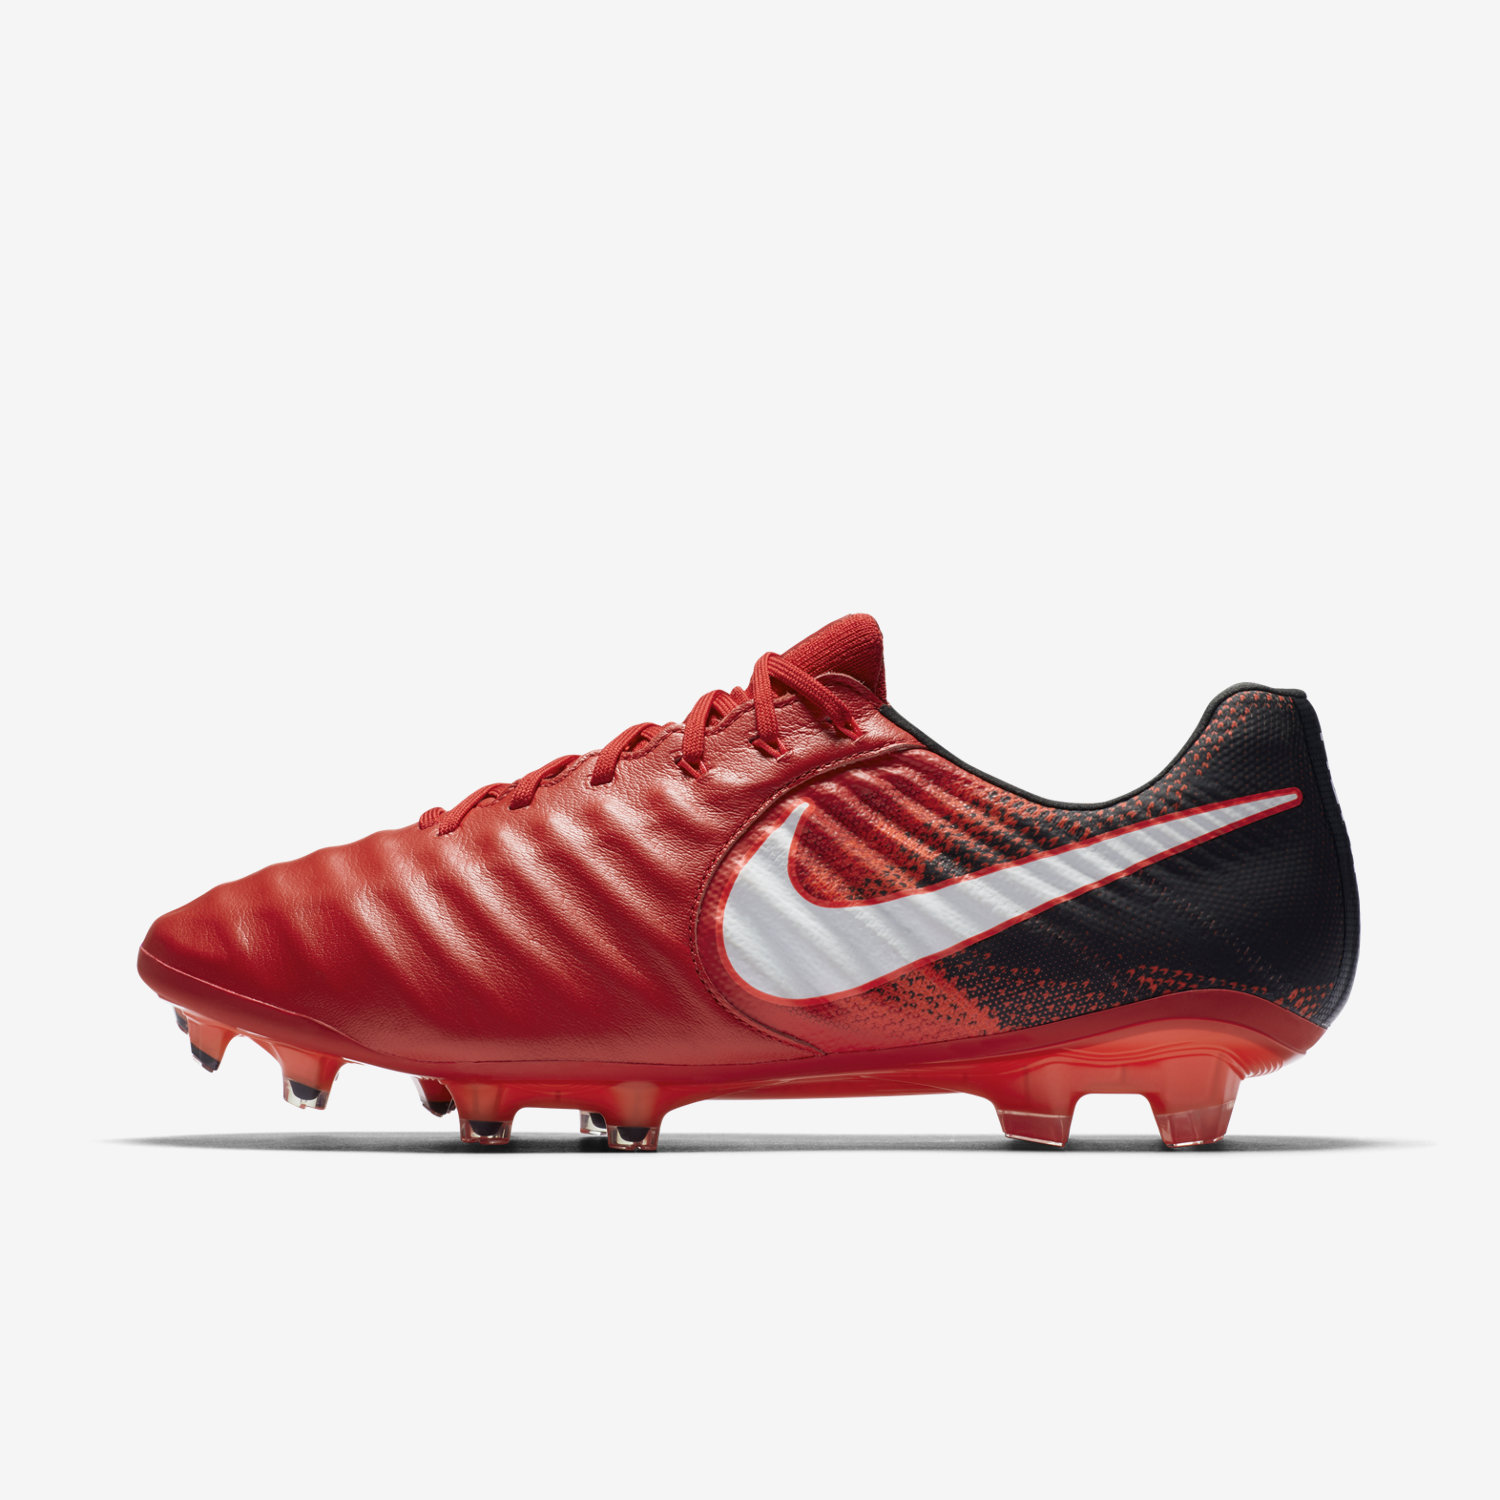 Nike Tiempo Legend VII FG - Red/Black - fire & ice red